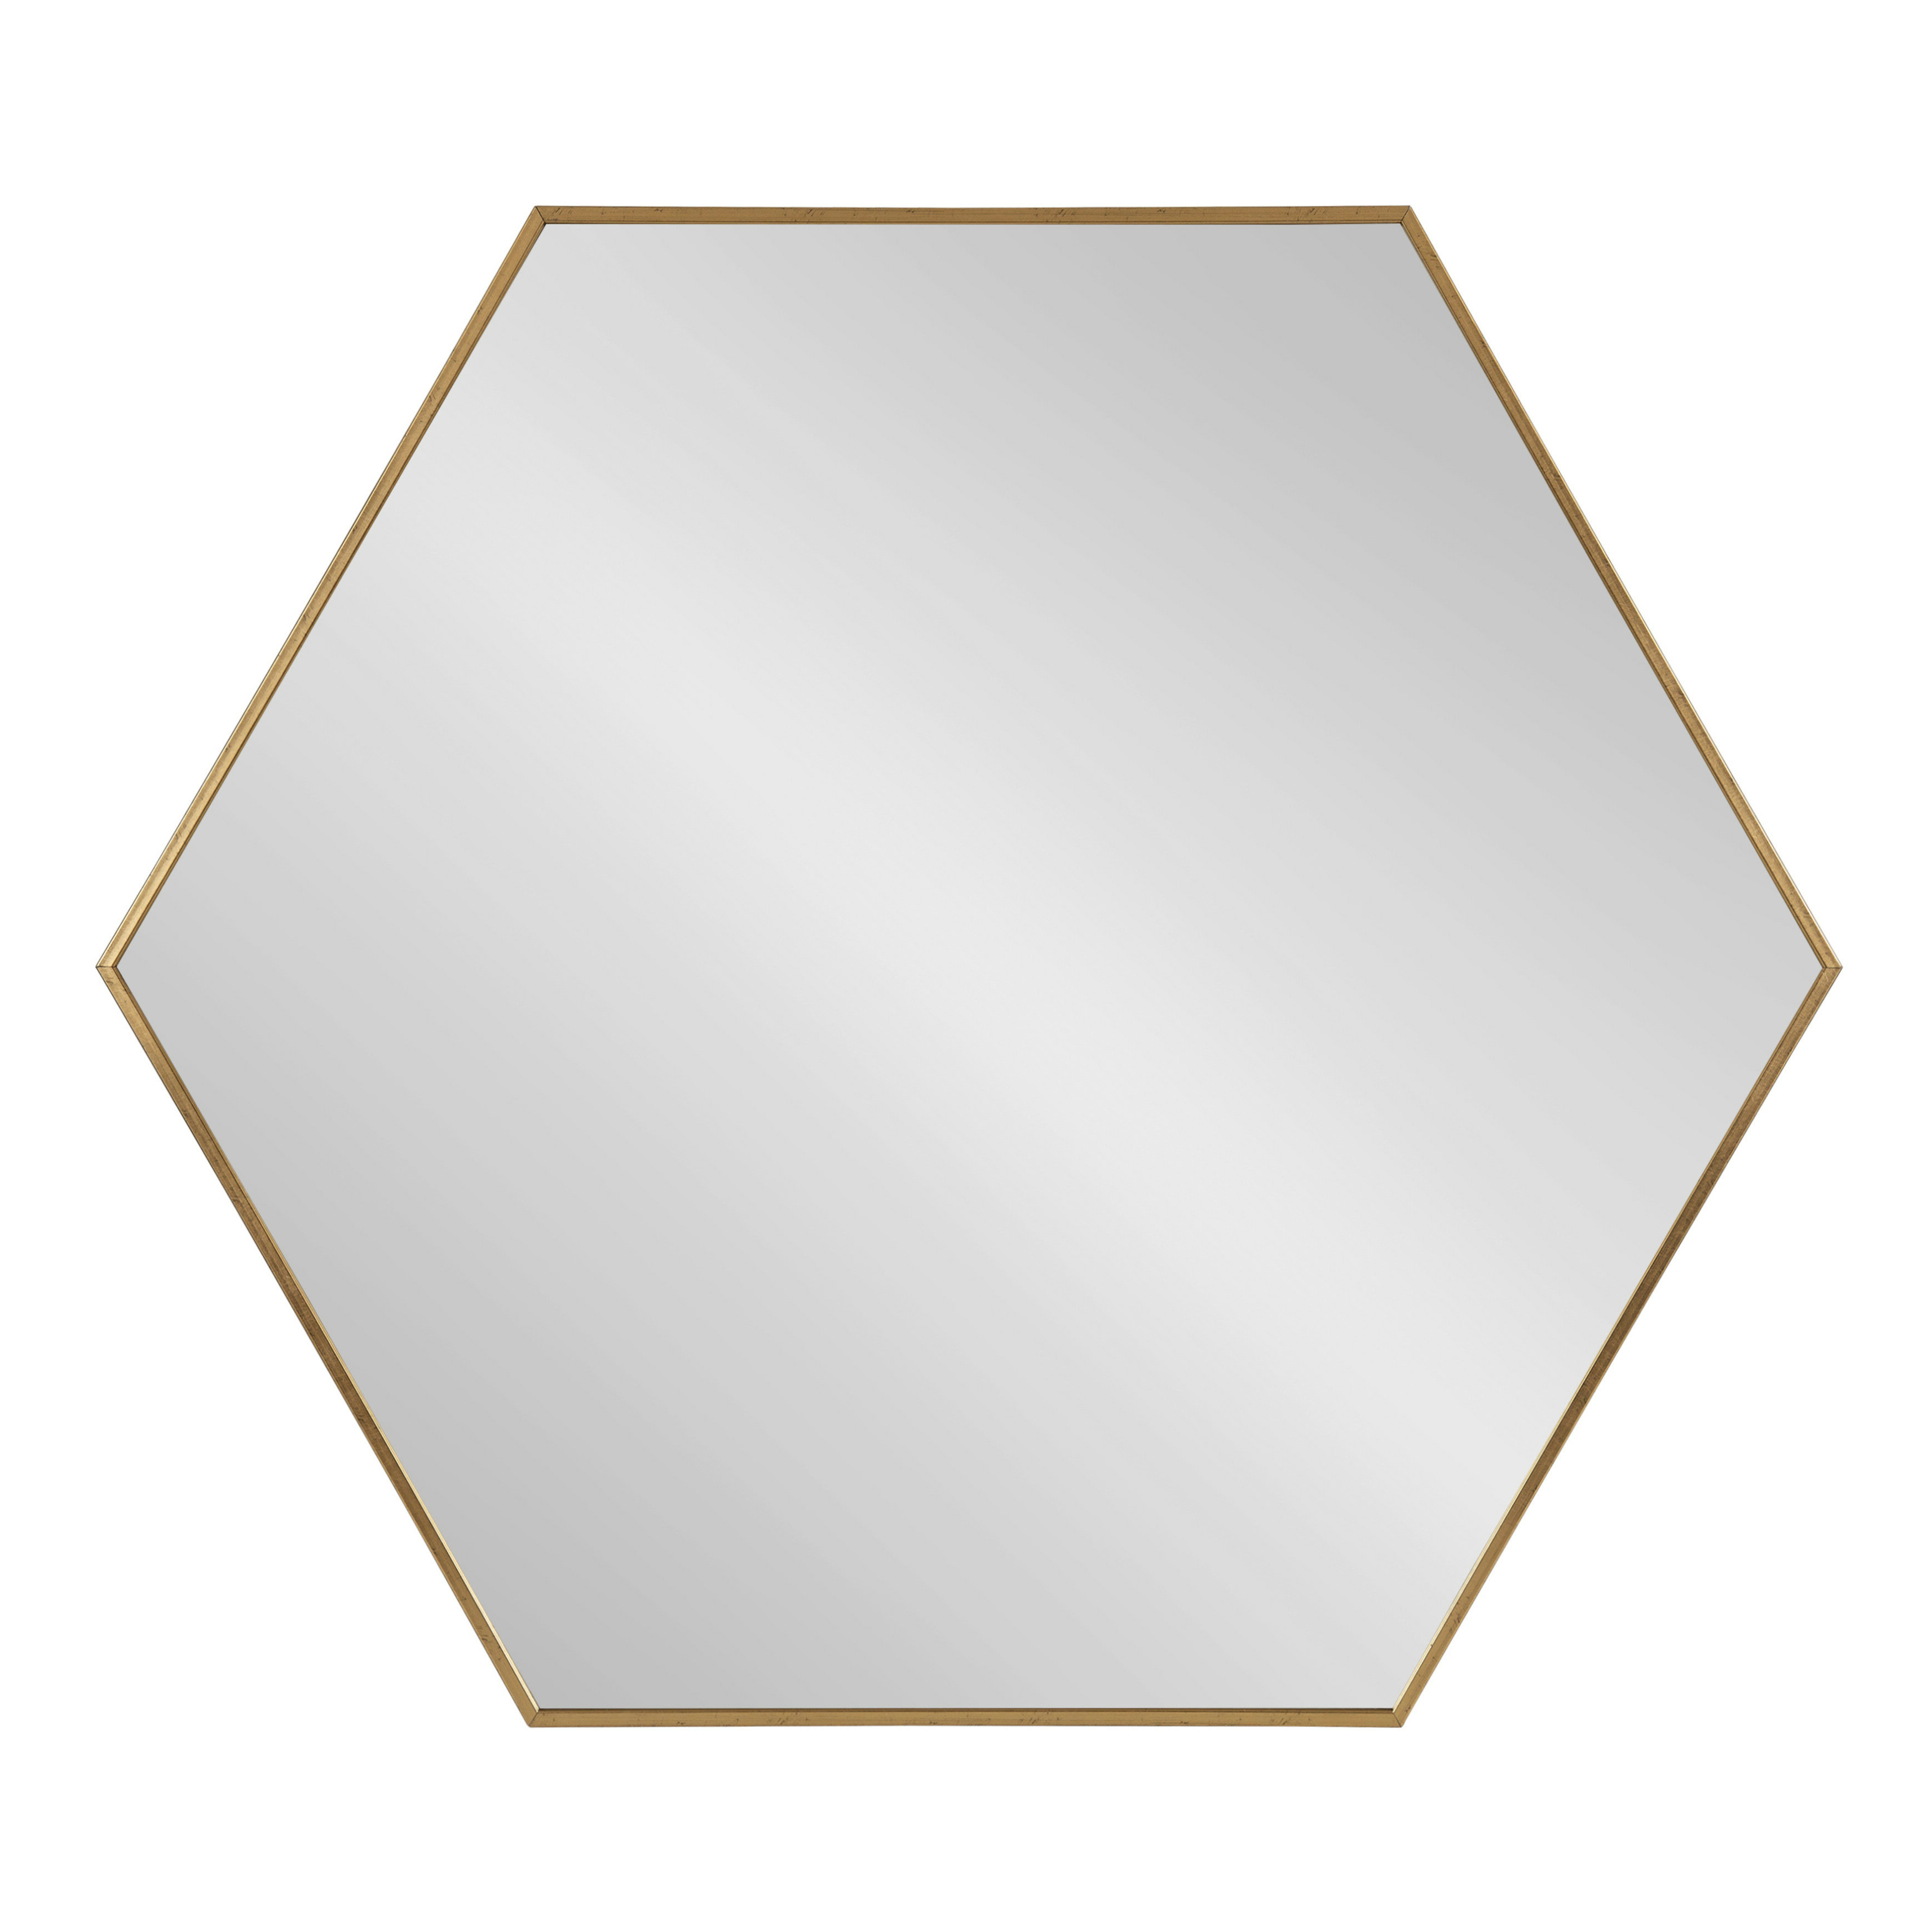 Gia Hexagon Accent Mirrors Intended For Most Popular Bothell 6 Sided Hexagon Modern Beveled Accent Mirror (View 10 of 20)